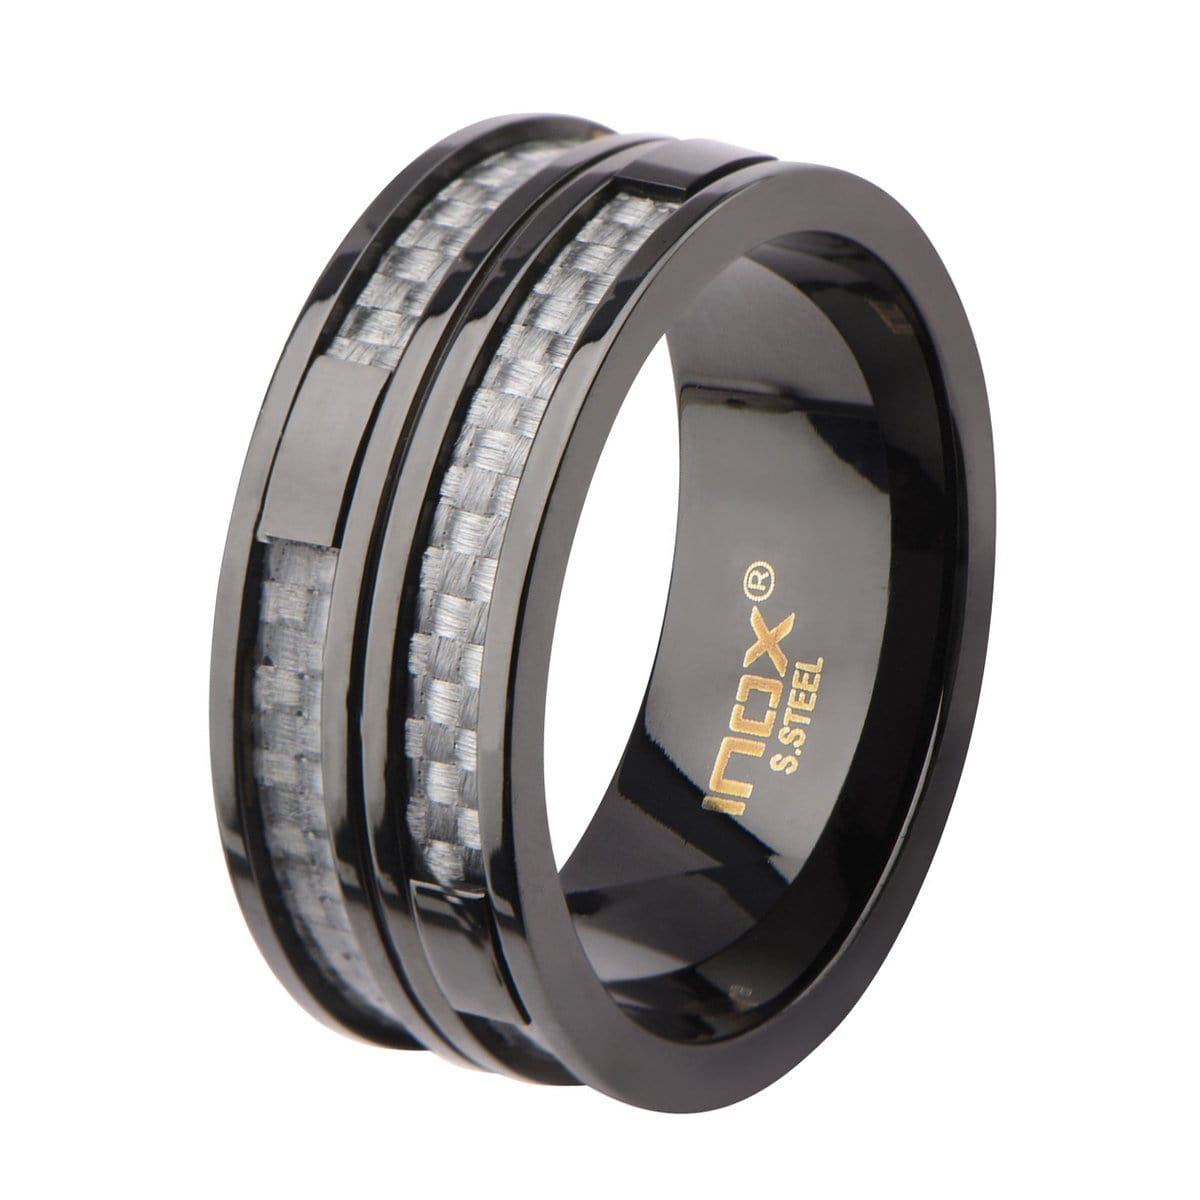 Black Stainless Steel Gray Carbon Fiber Double Layer Banded Ring Rings